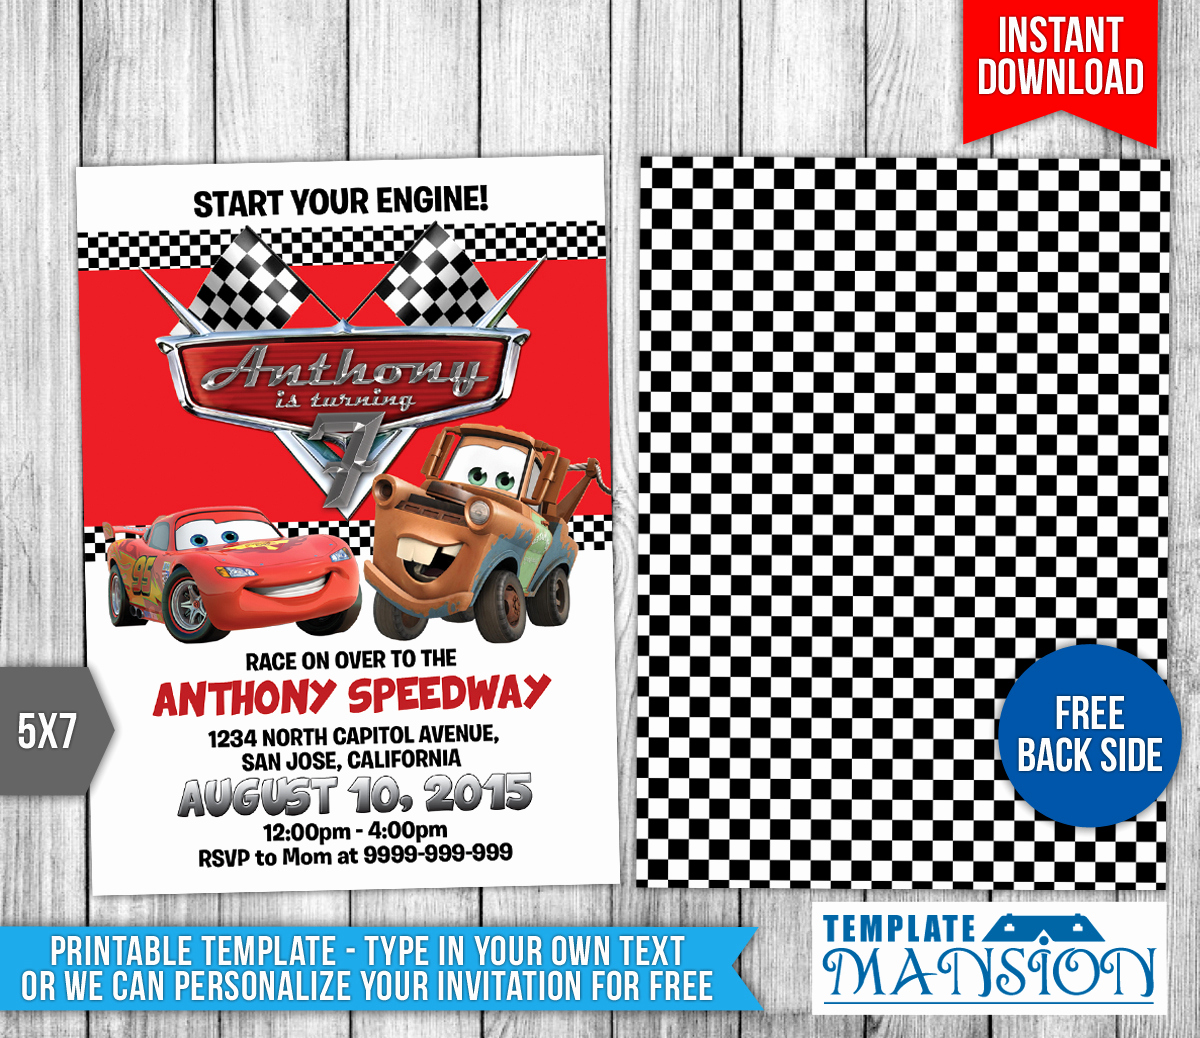 Disney Cars Invitation Template New Disney Cars Birthday Invitation 2 by Templatemansion On